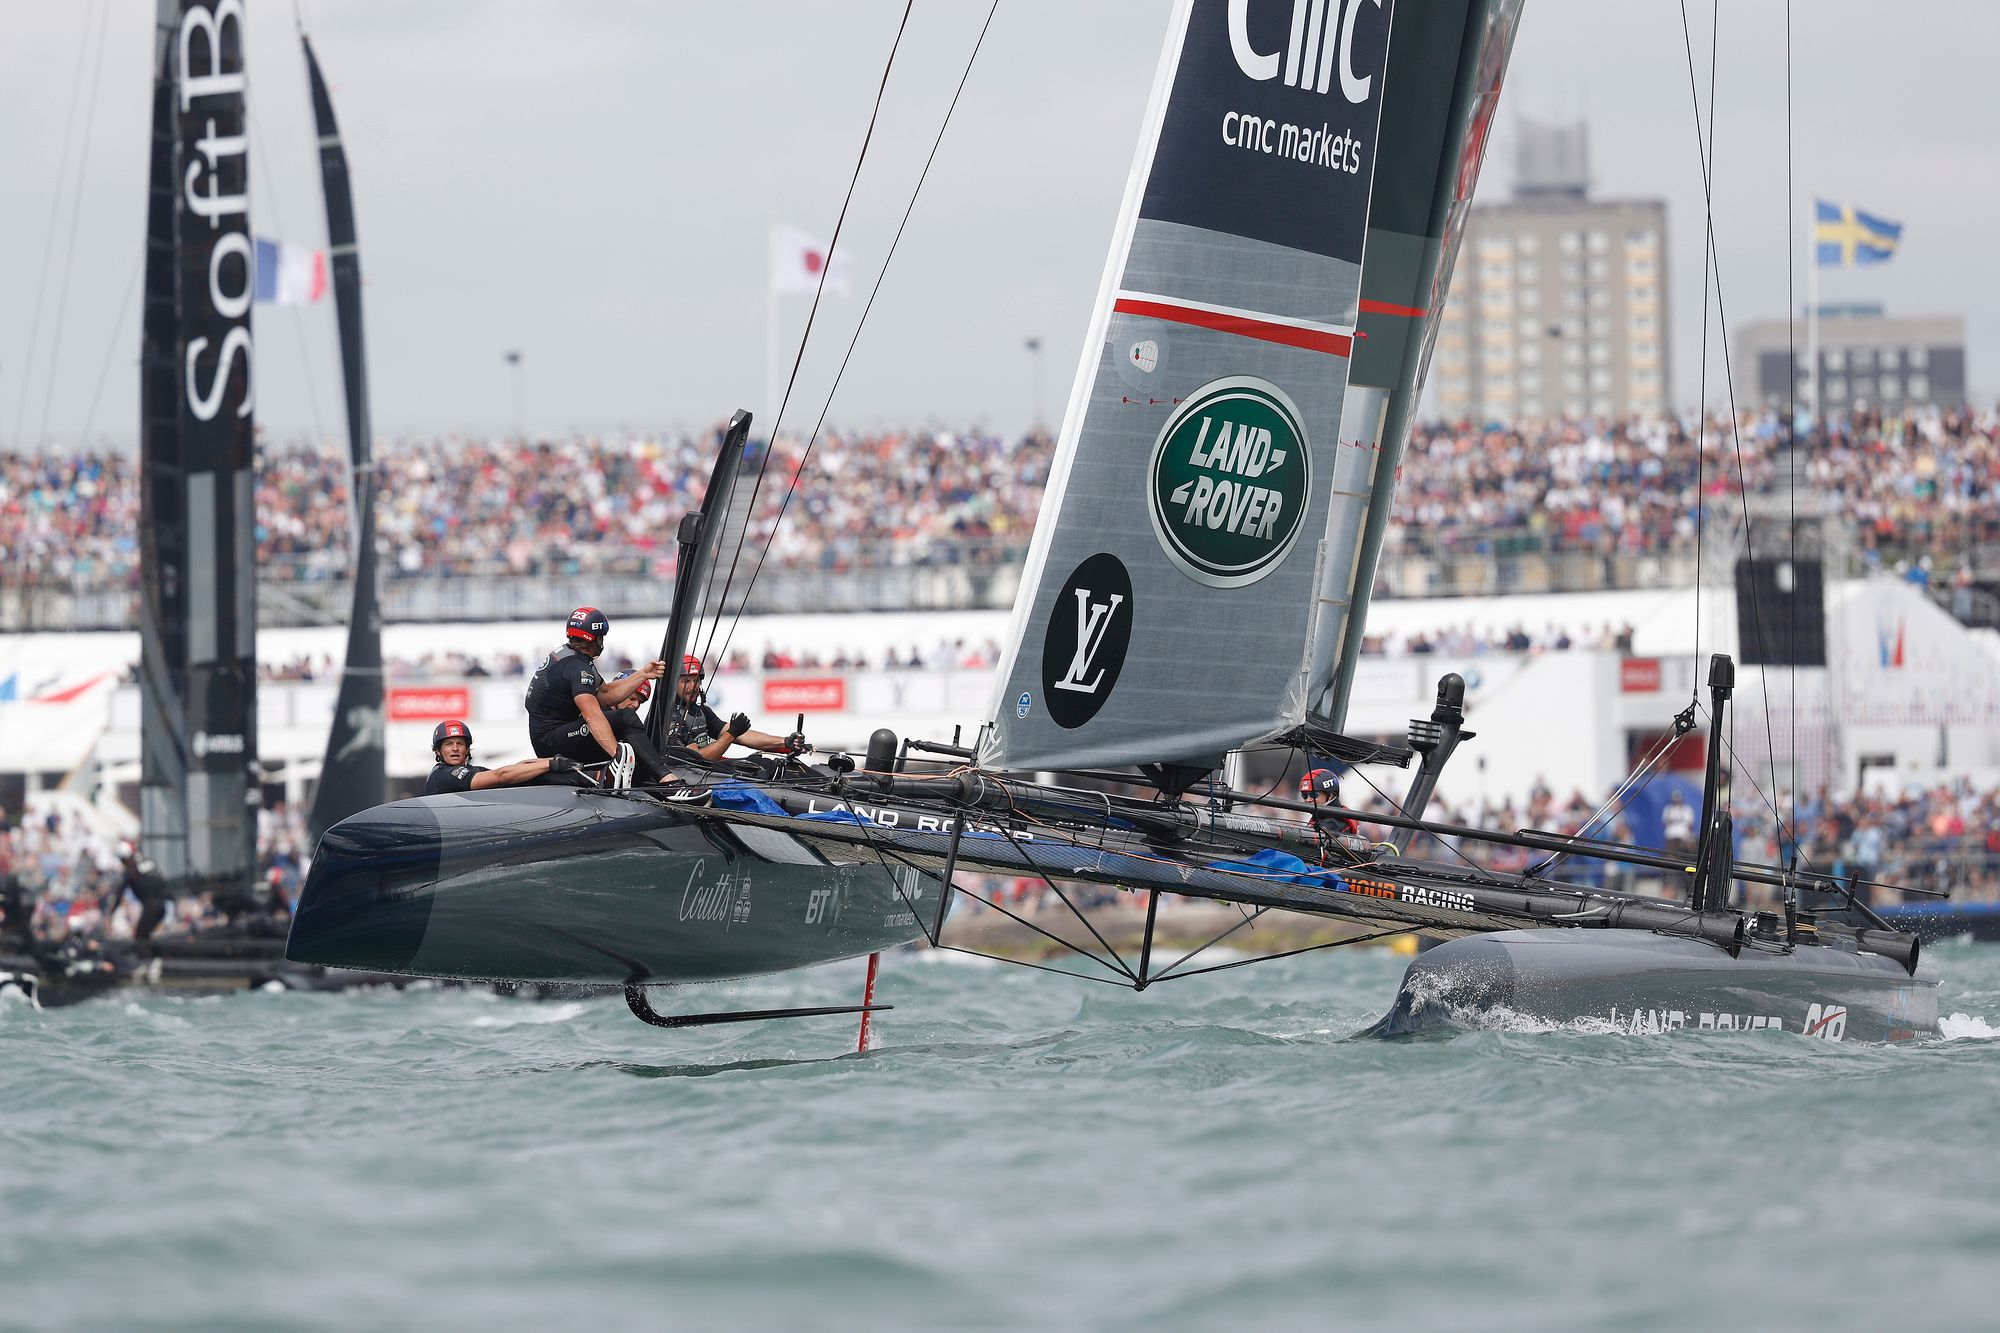 Home team Land Rover BAR win America's Cup World Series Portsmouth